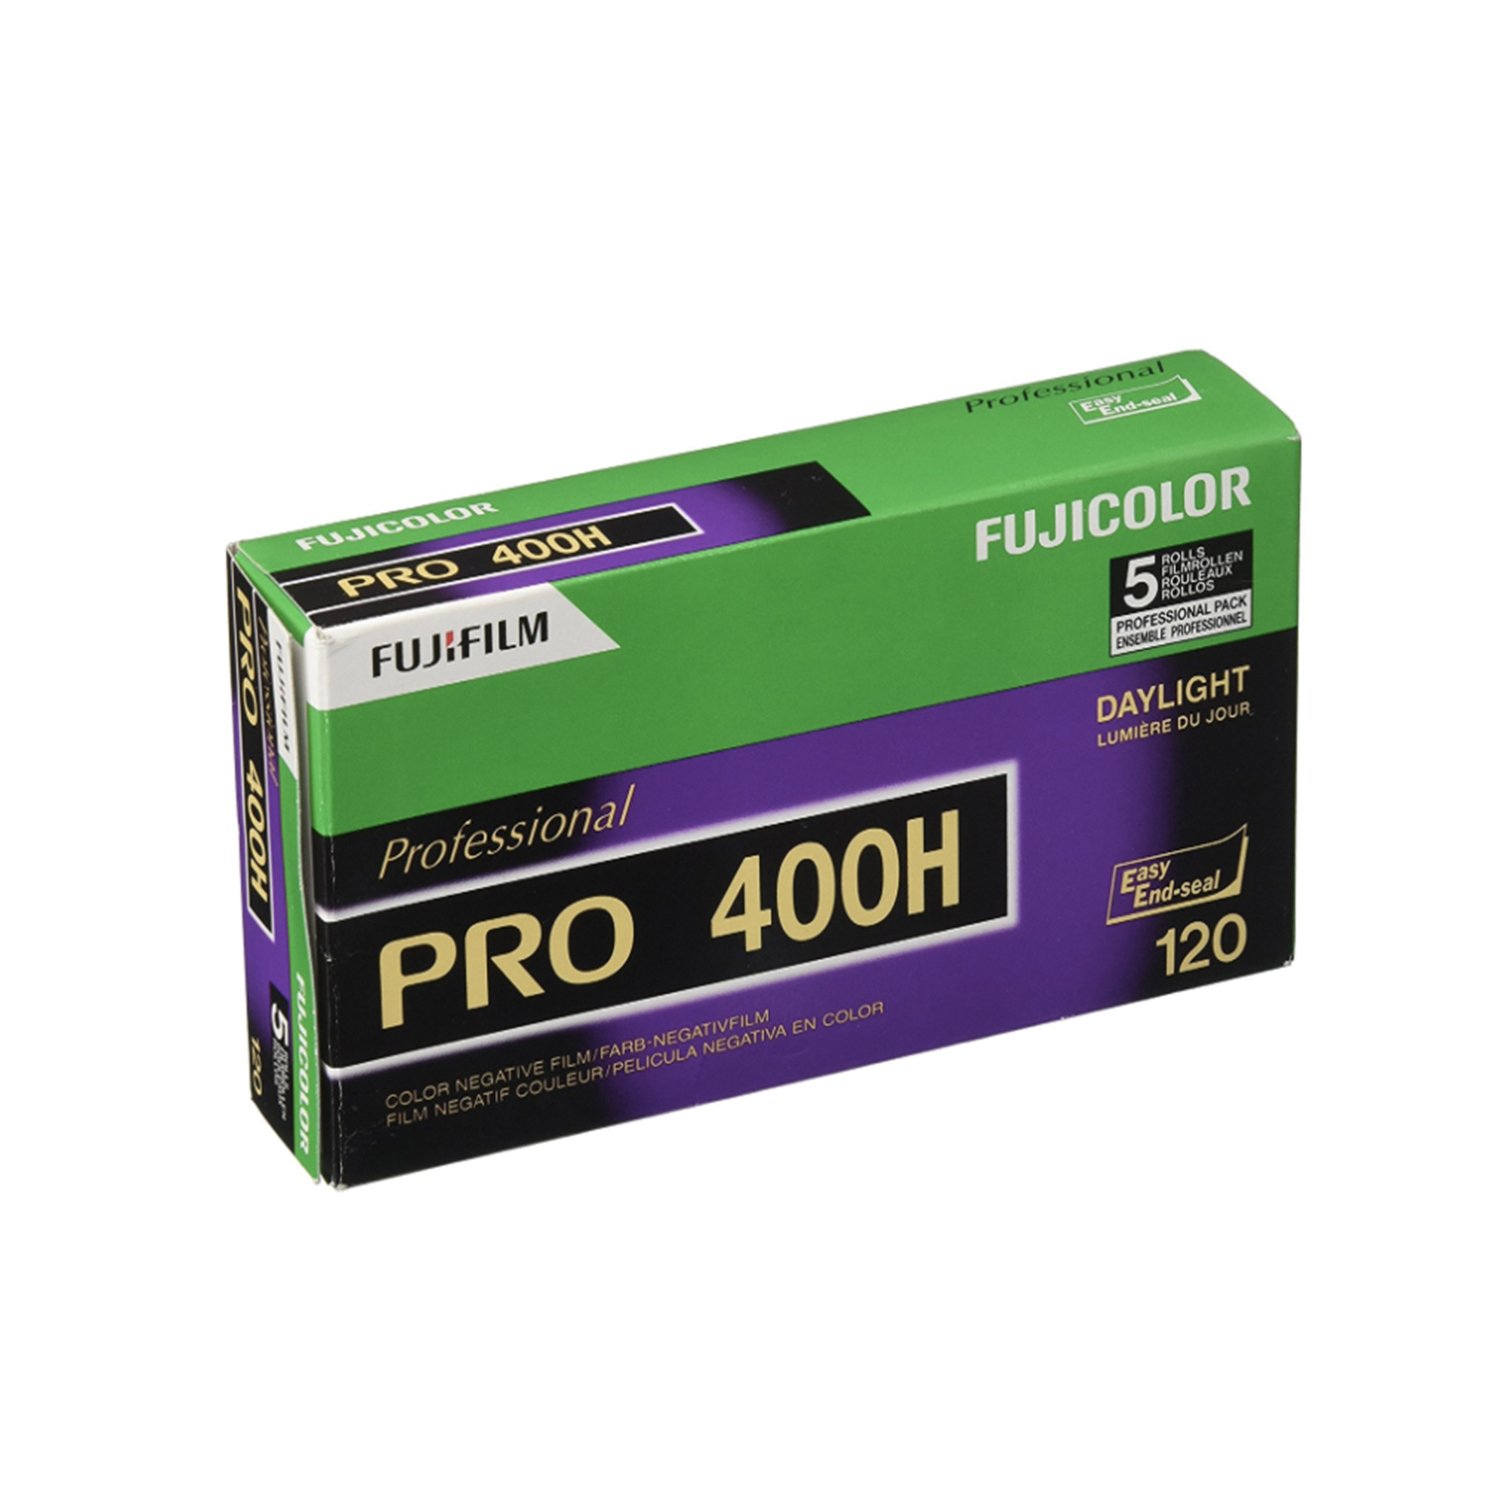 Fujifilm Fujicolor Pro 400H (120) 5-Pack Color Negative Film